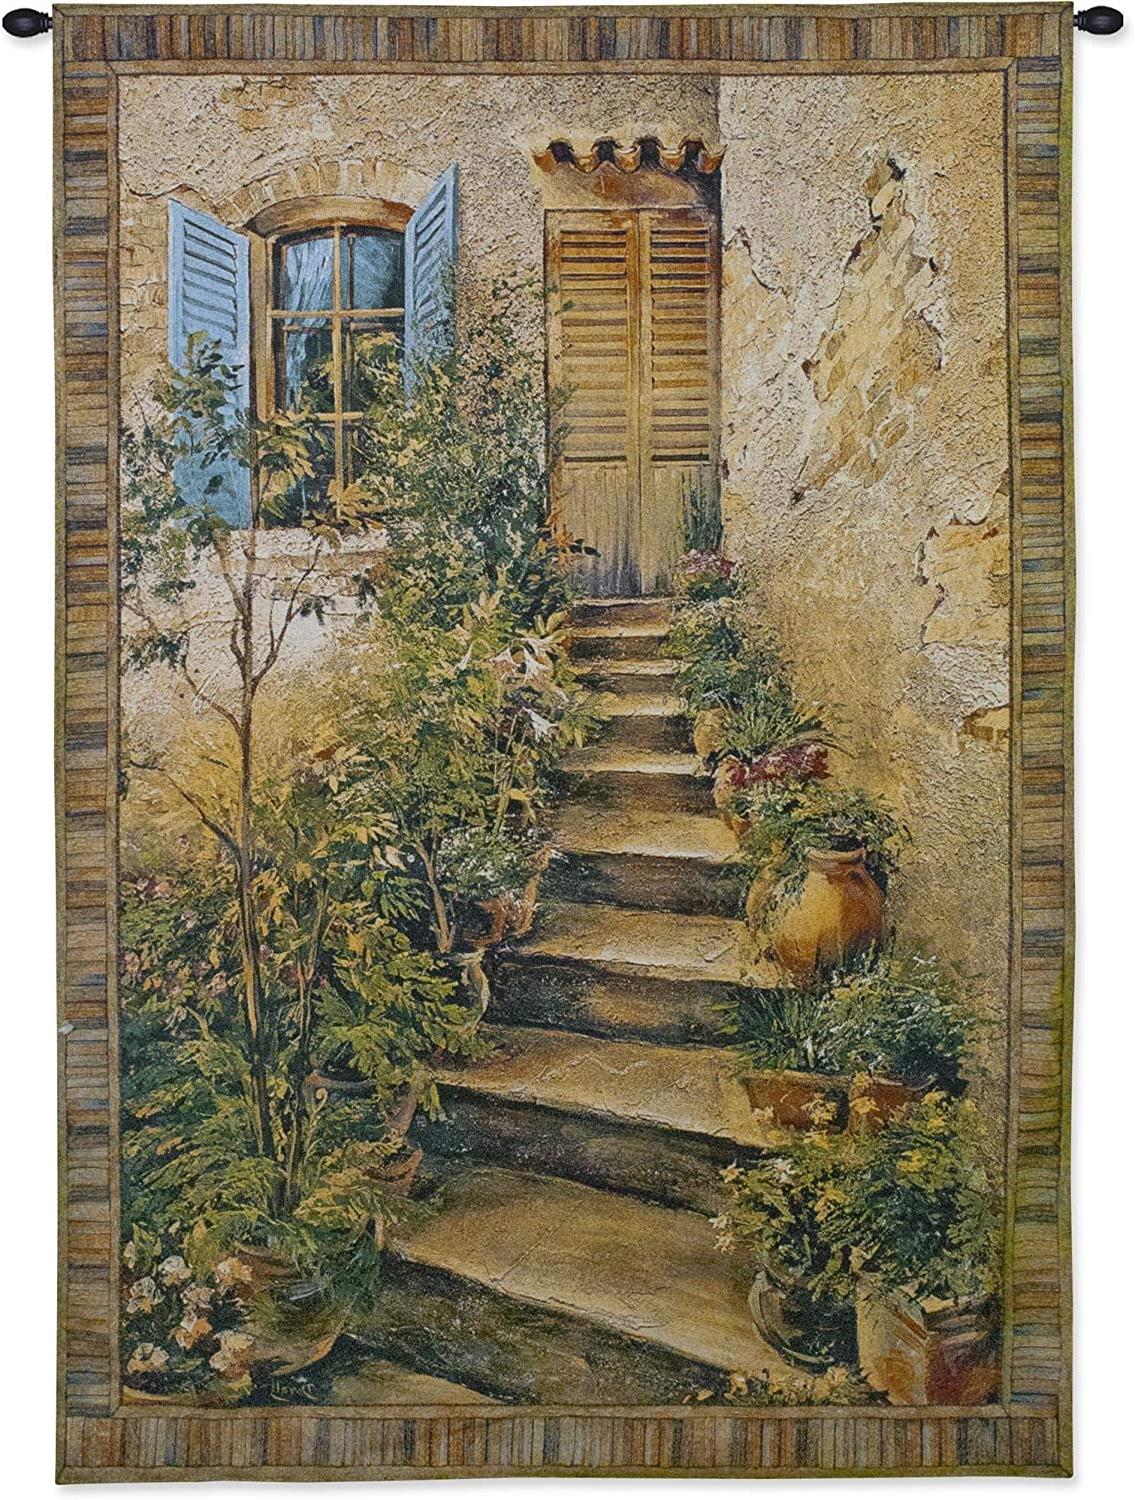 [%tuscan Villa Iiroger Duvall | Woven Tapestry Wall Art Hanging | Rustic Italian Village Steps | 100% Cotton Usa Size 34x26 For Current Blended Fabric Faraway Longing Wall Hangings|blended Fabric Faraway Longing Wall Hangings With Regard To Favorite Tuscan Villa Iiroger Duvall | Woven Tapestry Wall Art Hanging | Rustic Italian Village Steps | 100% Cotton Usa Size 34x26|trendy Blended Fabric Faraway Longing Wall Hangings Intended For Tuscan Villa Iiroger Duvall | Woven Tapestry Wall Art Hanging | Rustic Italian Village Steps | 100% Cotton Usa Size 34x26|2020 Tuscan Villa Iiroger Duvall | Woven Tapestry Wall Art Hanging | Rustic Italian Village Steps | 100% Cotton Usa Size 34x26 Regarding Blended Fabric Faraway Longing Wall Hangings%] (View 3 of 20)